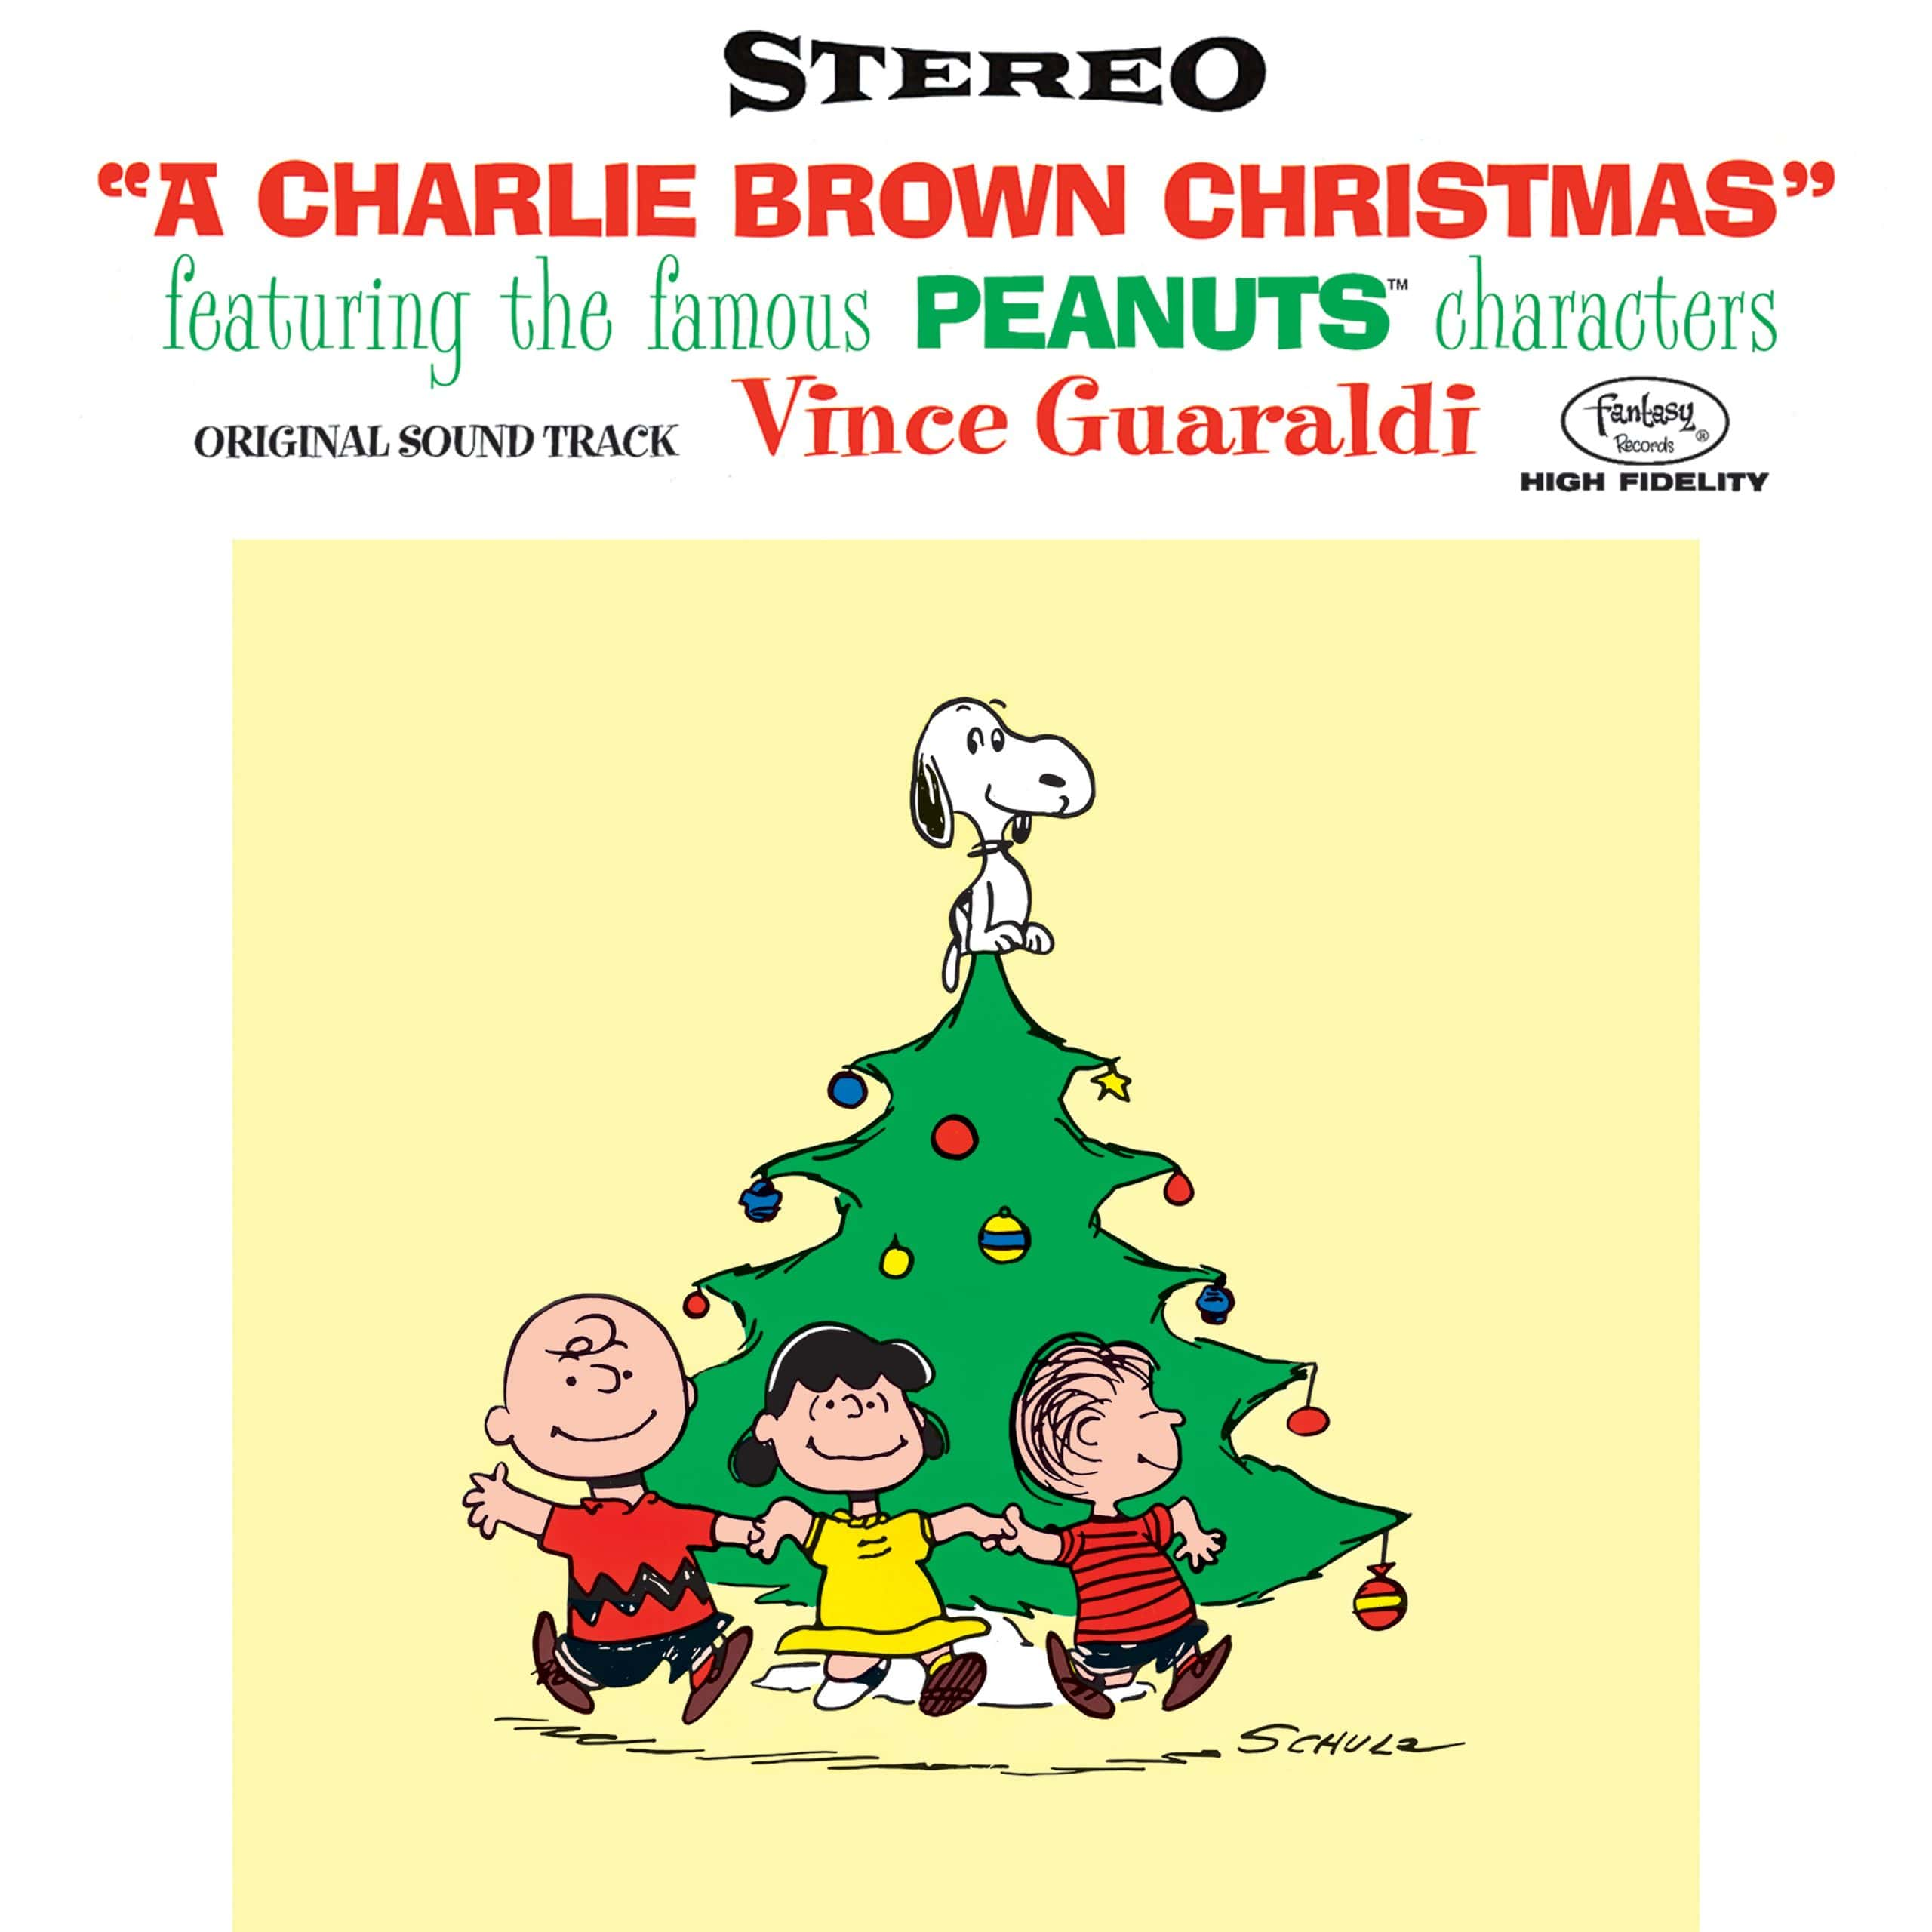 'A Charlie Brown Christmas' album cover